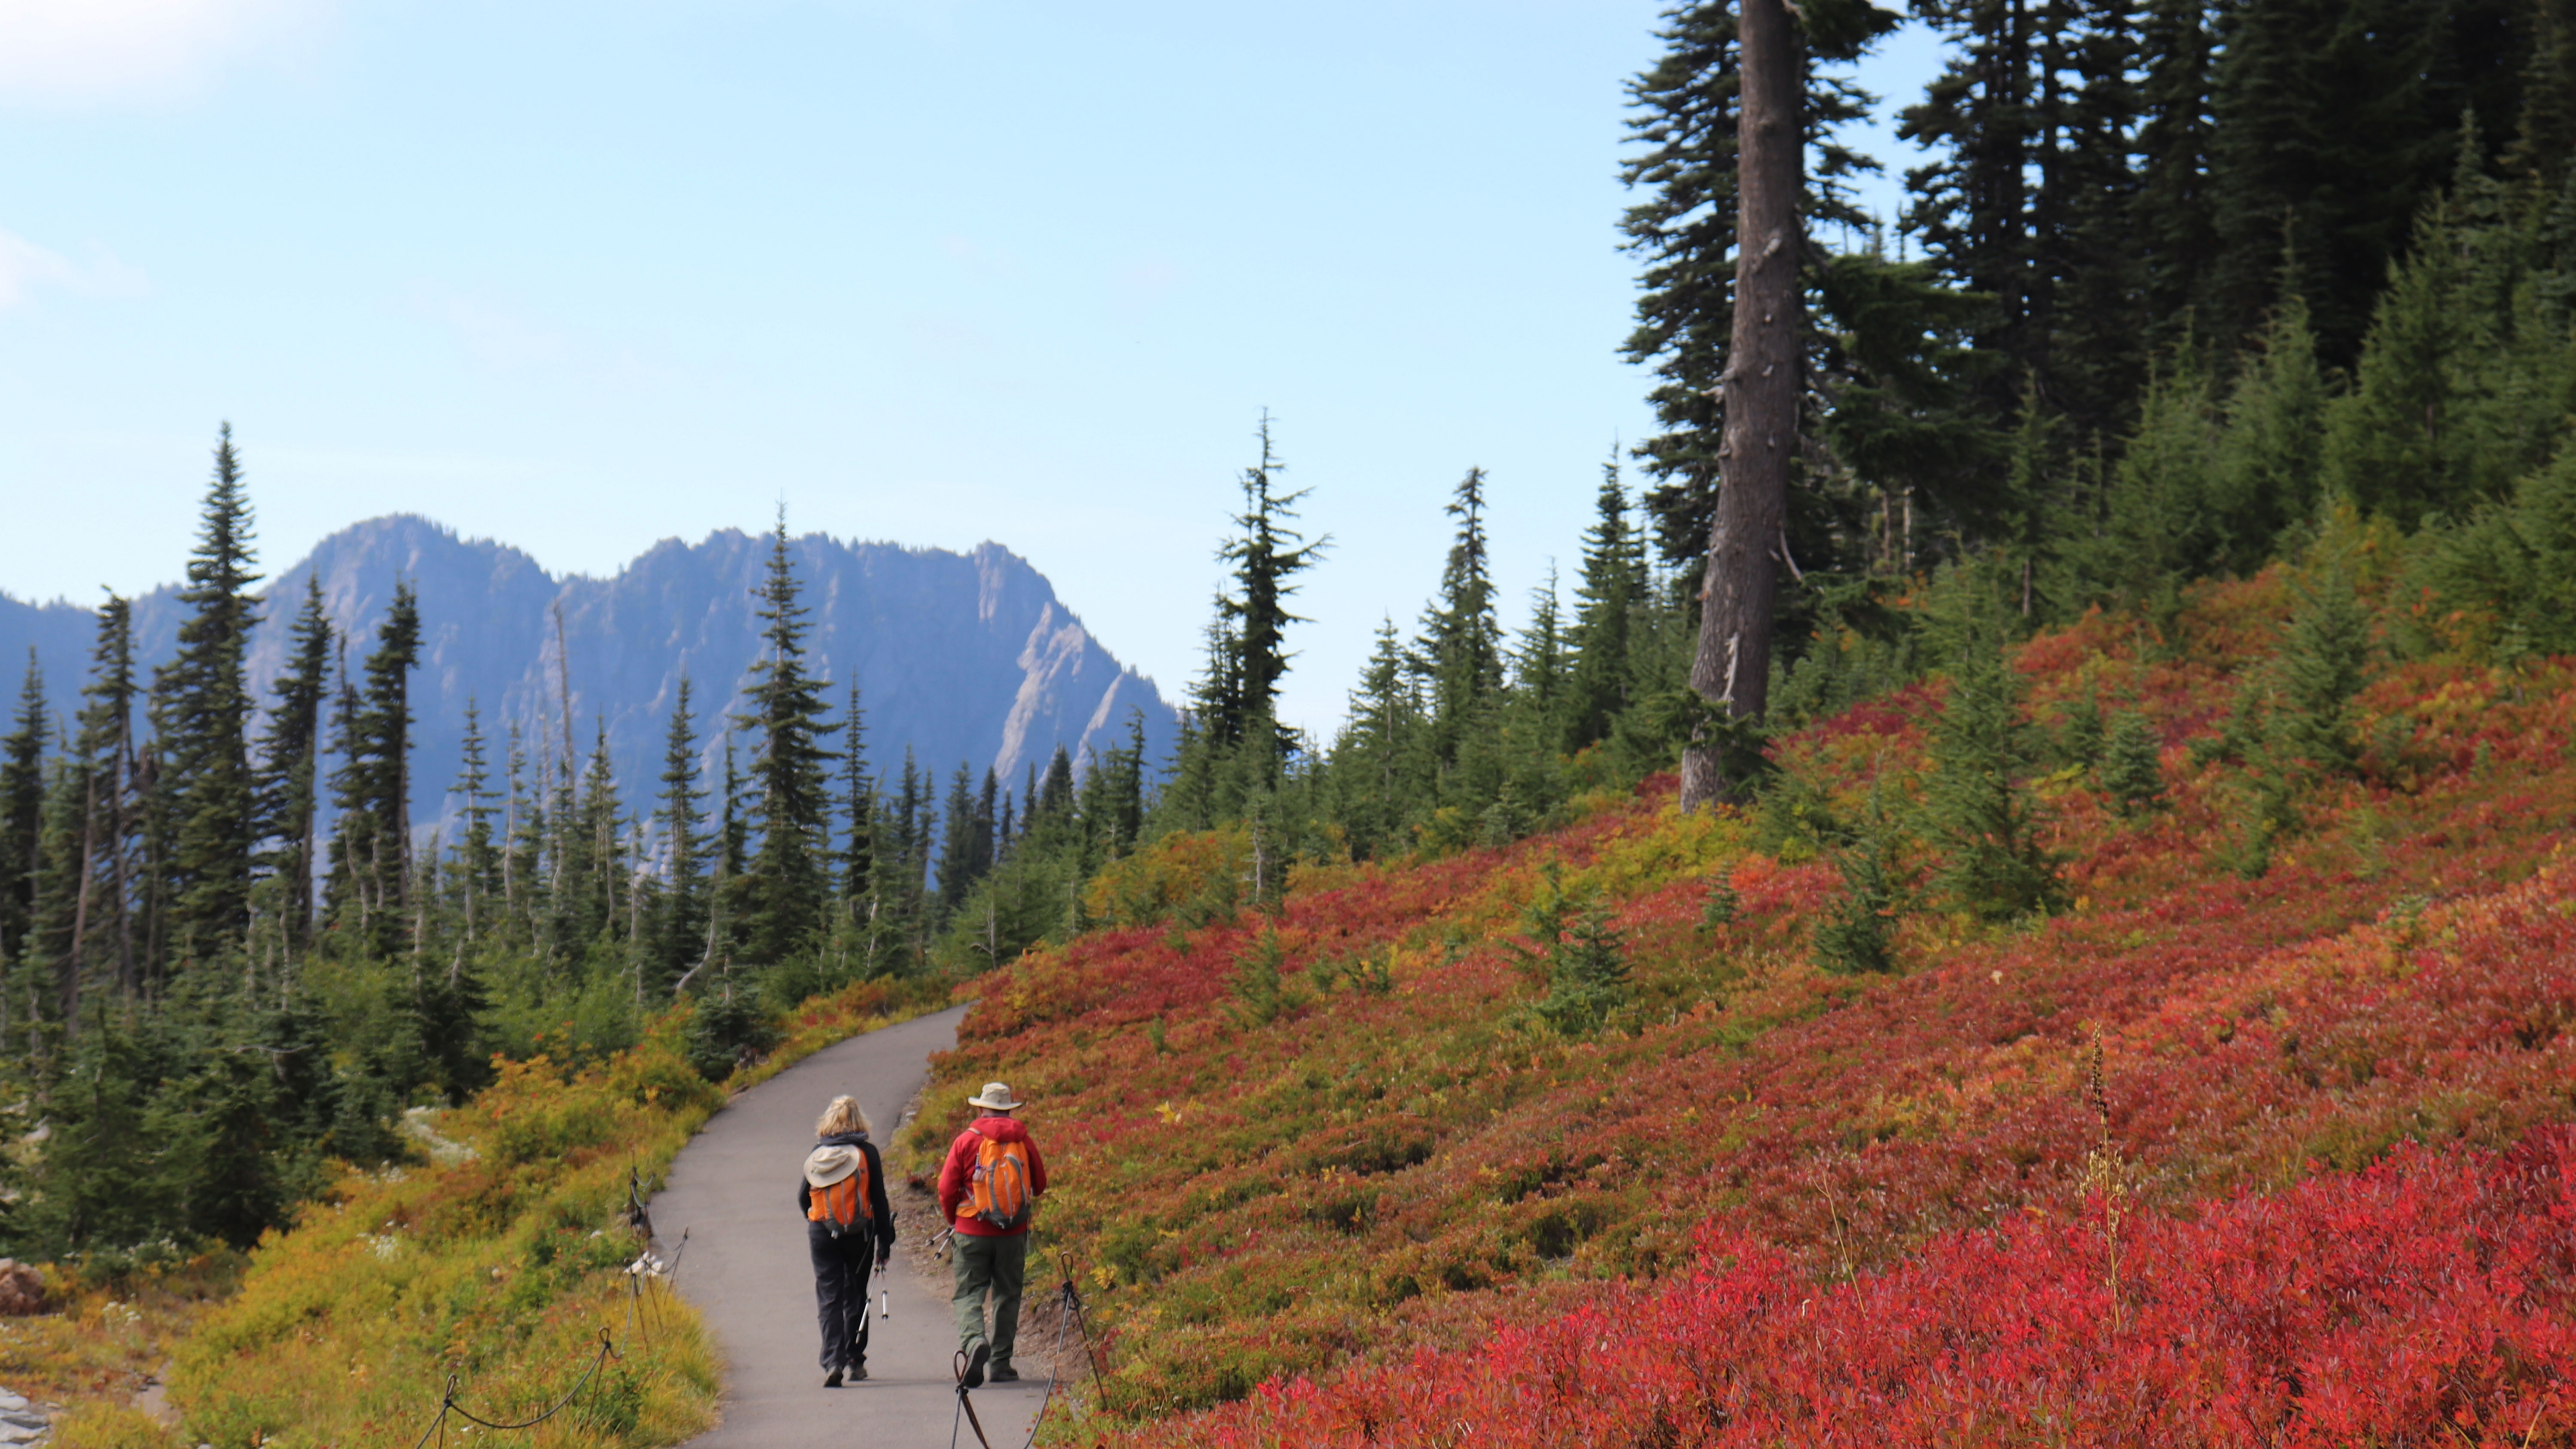 Hikers make their way along a paved path. To their right, a sloping field of red flowers. Far ahead in the distance, a mountain range.